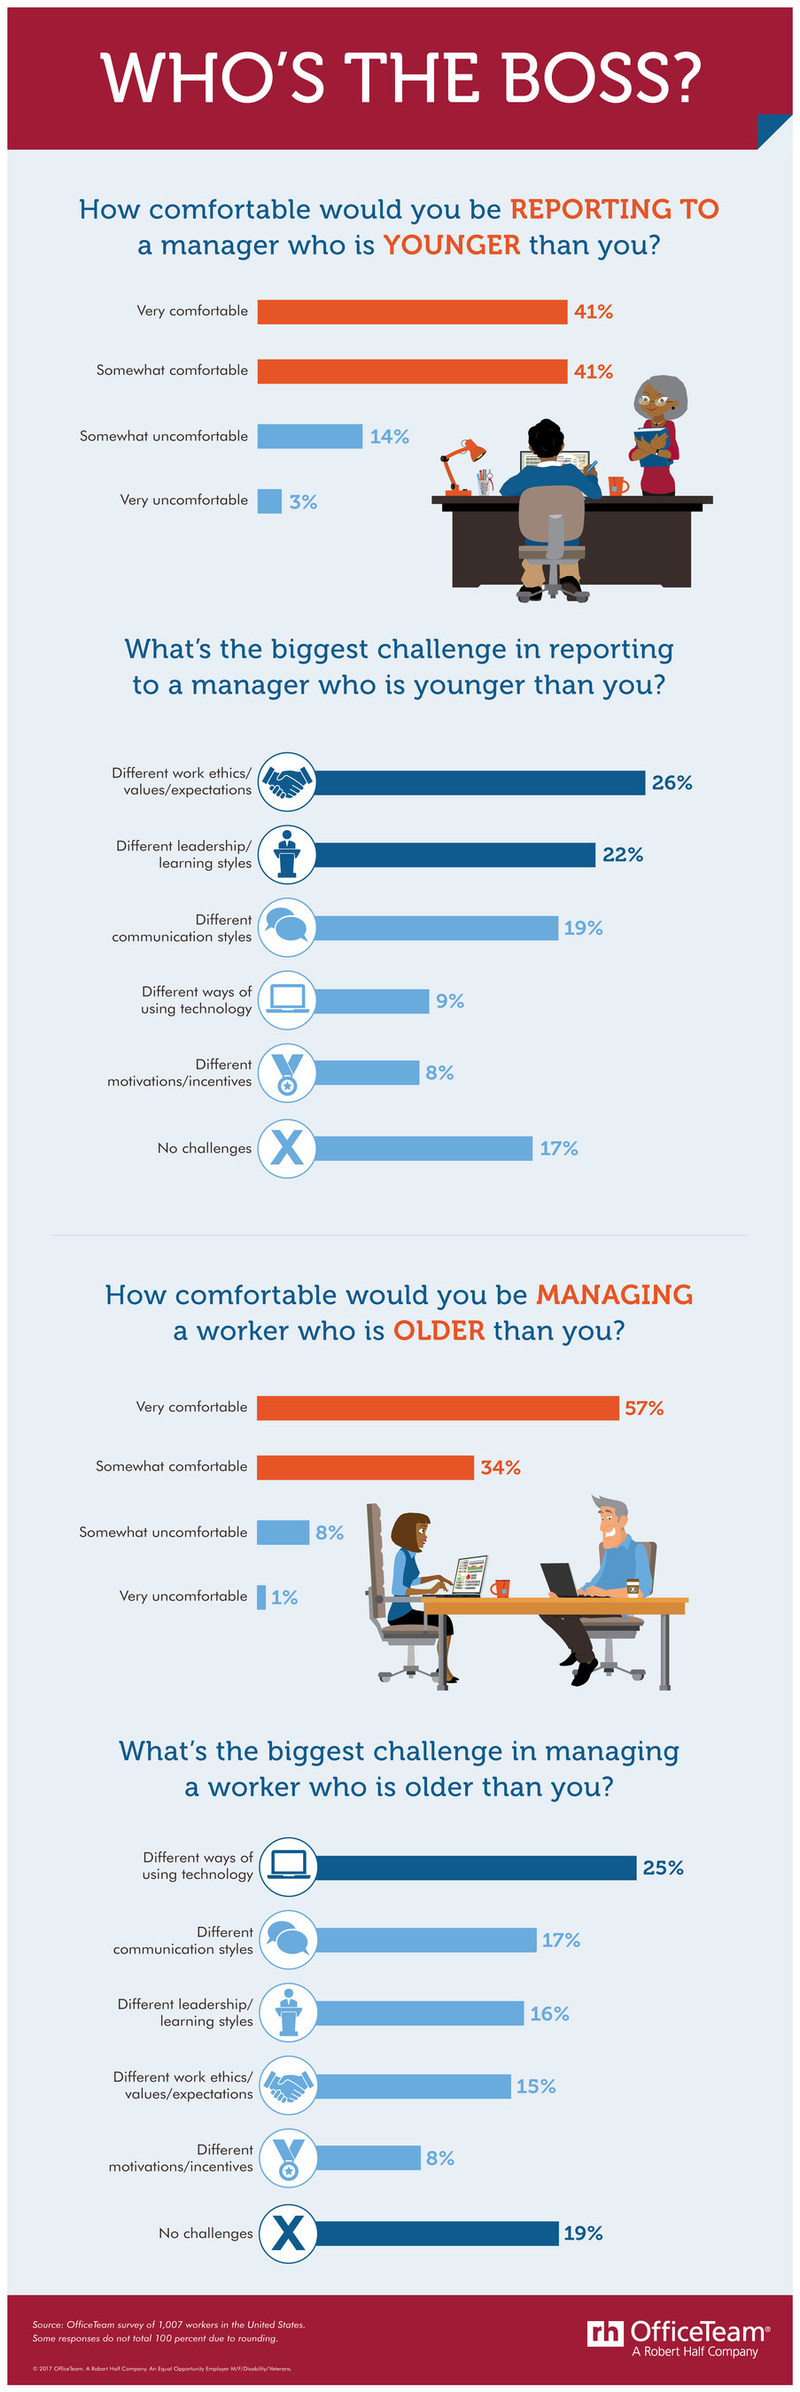 According to a new OfficeTeam survey, 82% of workers would be comfortable reporting to a manager who's younger than they are; 91% wouldn't mind supervising employees older than themselves.